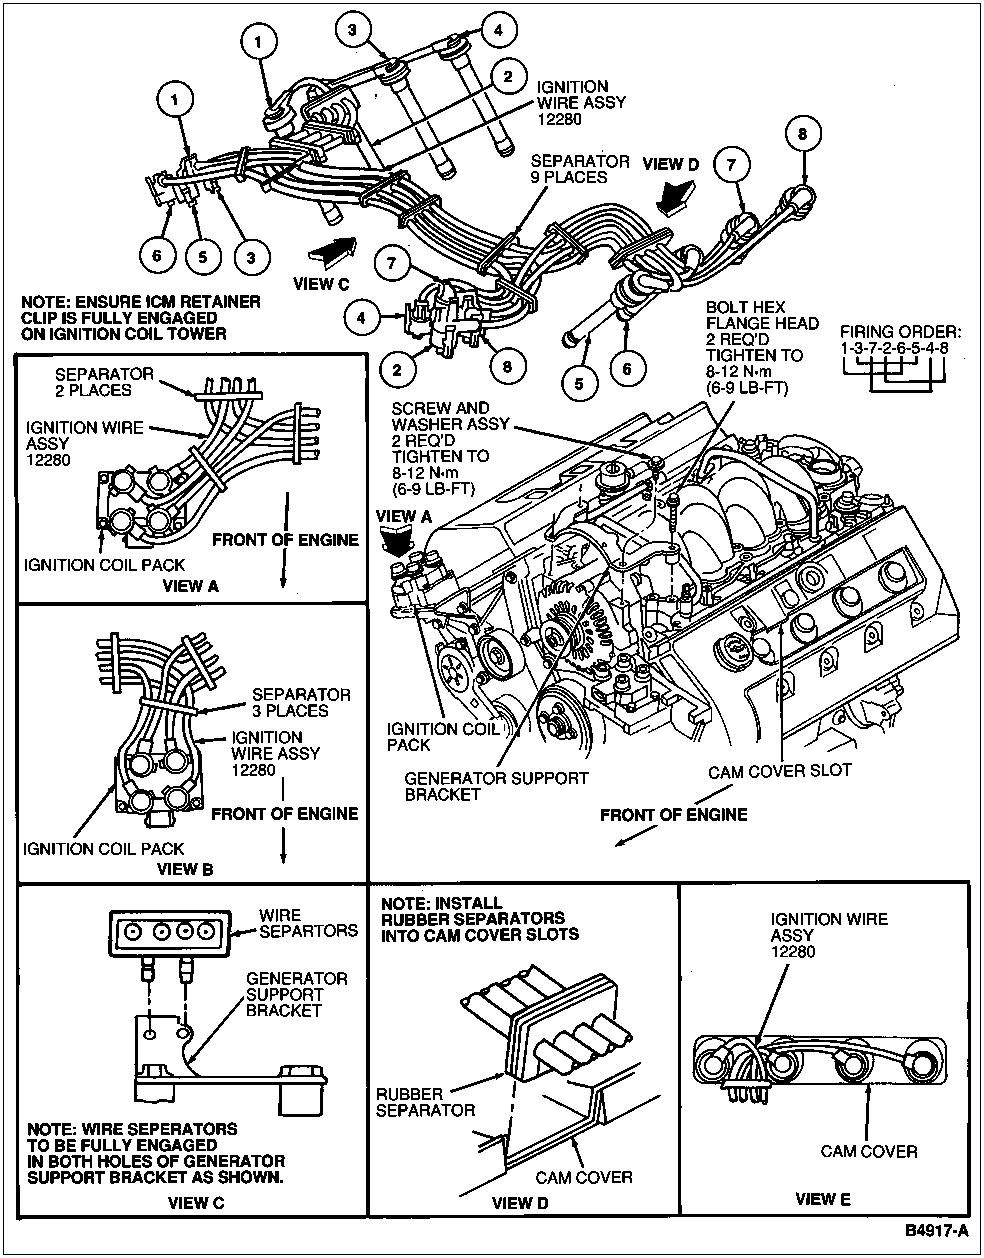 spark plug wiring diagram re spark plug wiring diagram this is 93